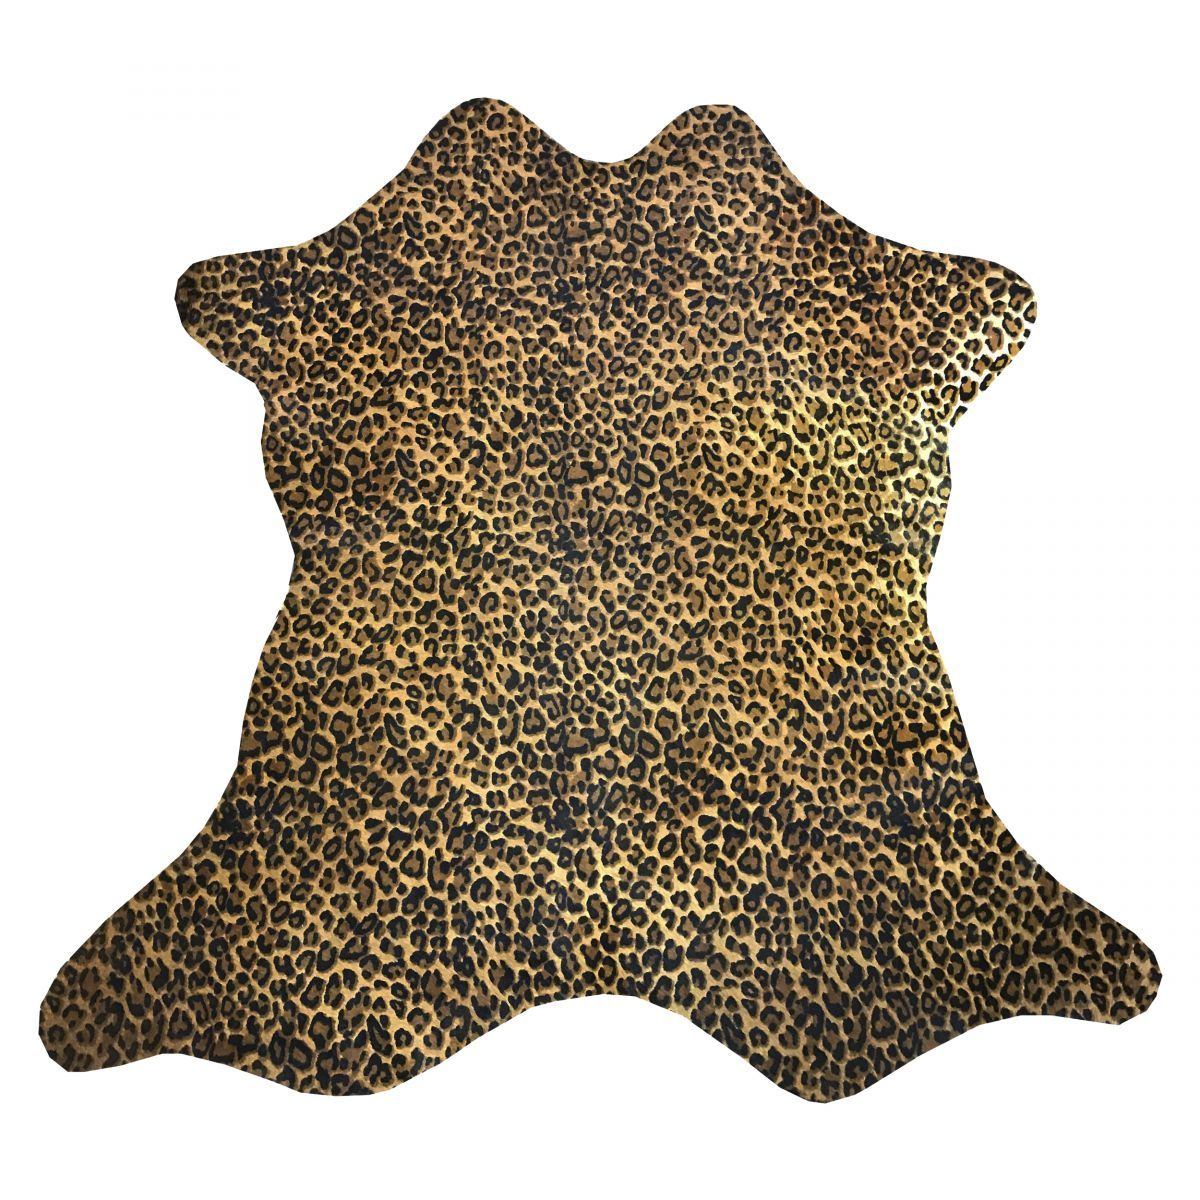 Hair-On Calfskin Print Rustic Leopard